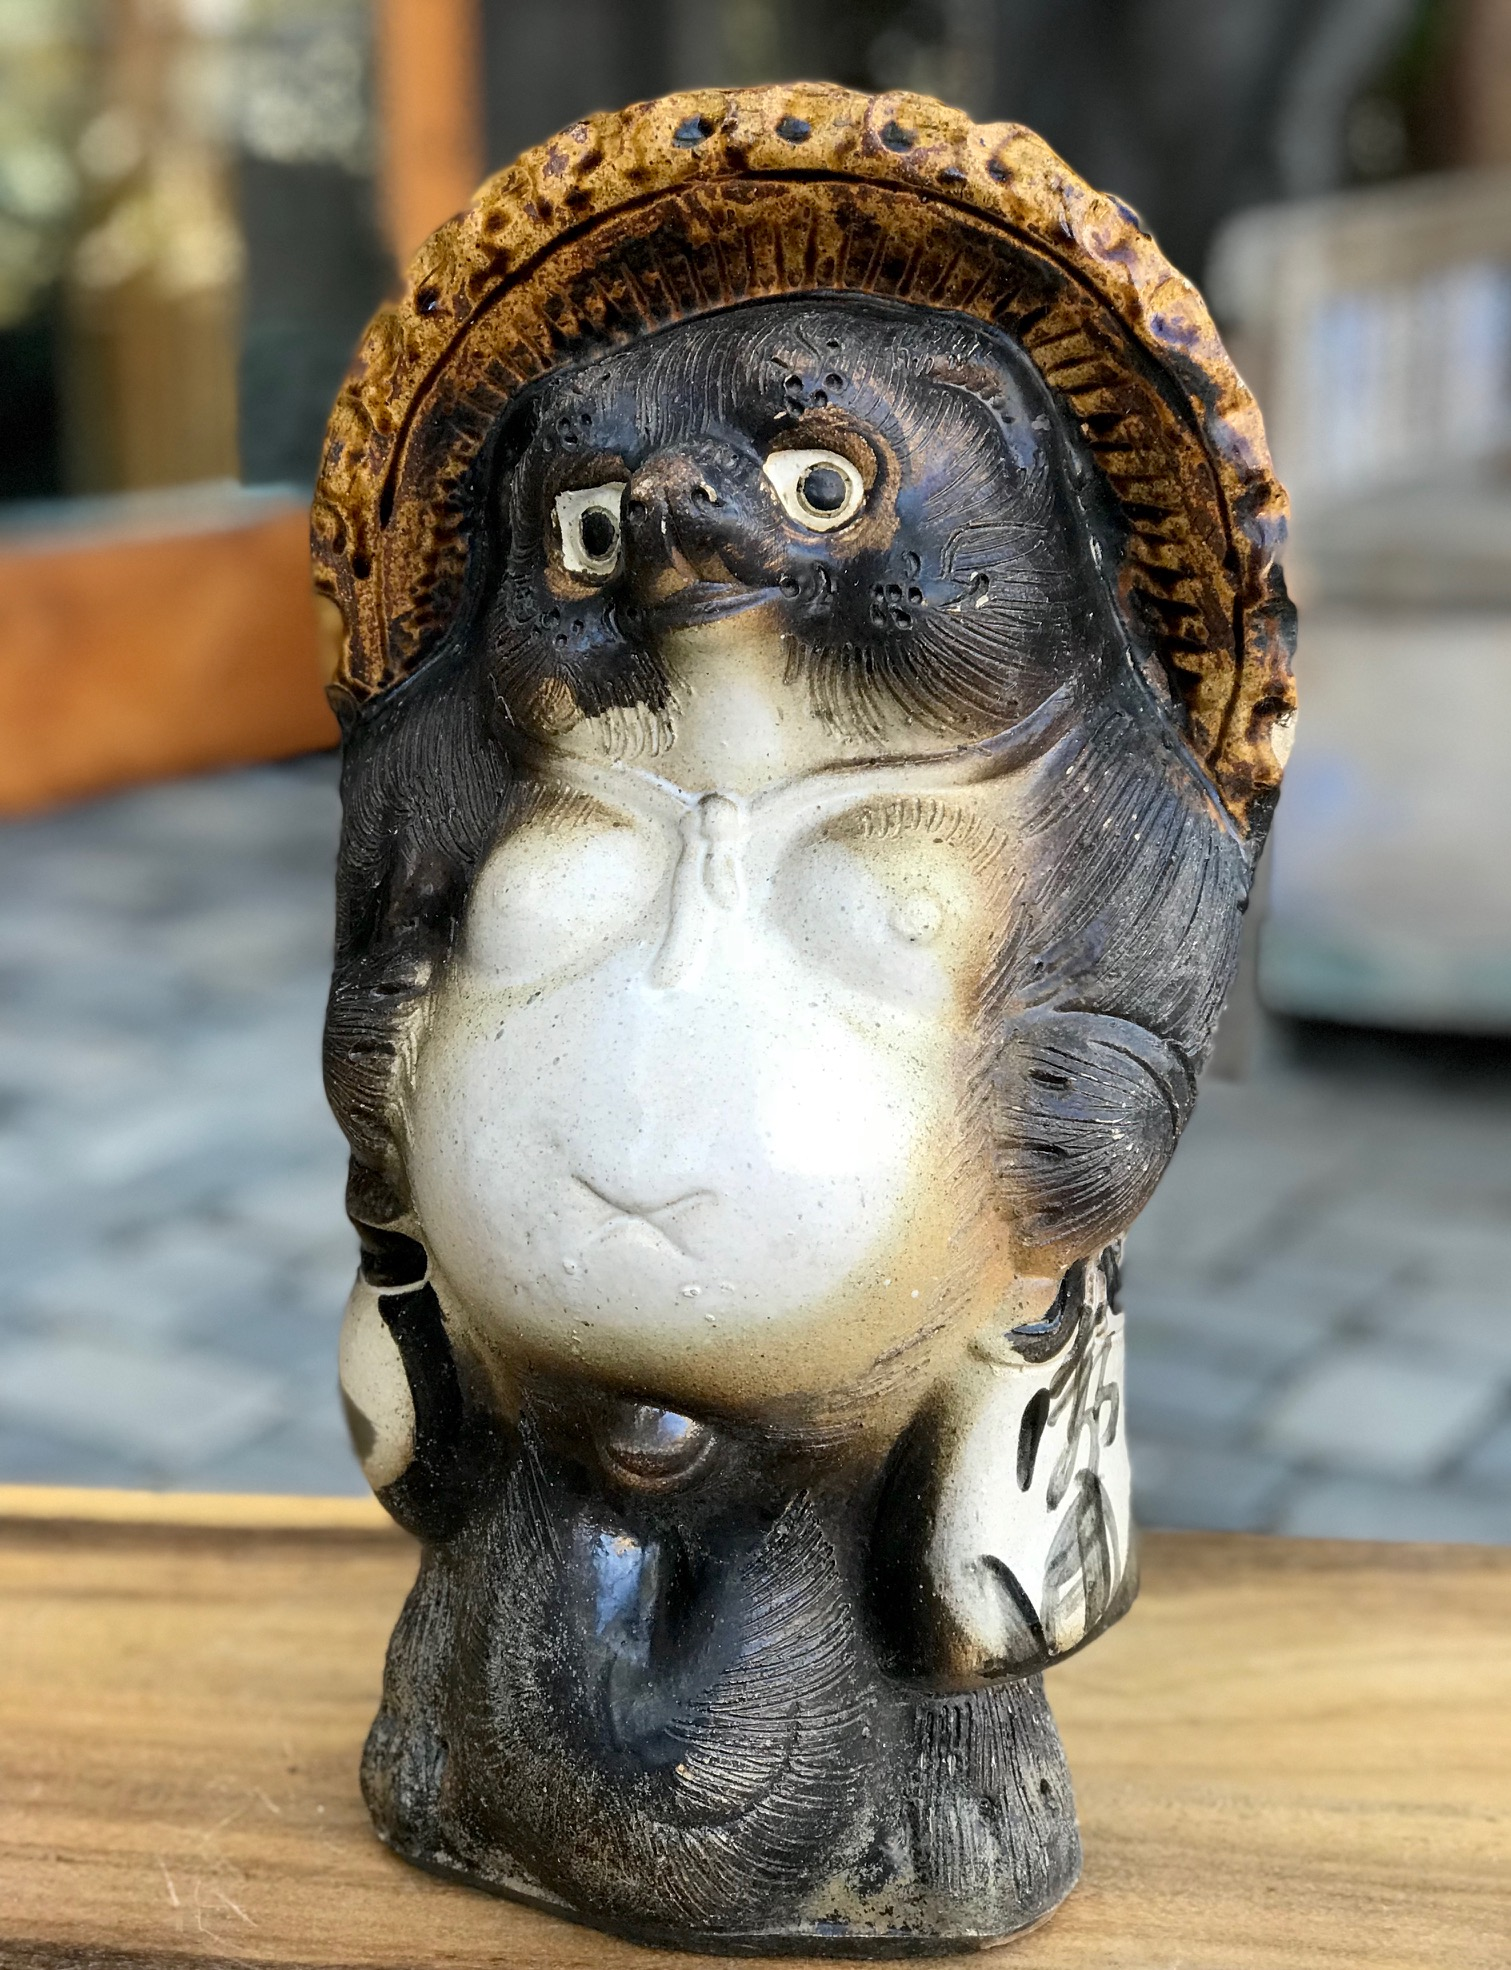 """Shigaraki Tanuki, Tanuki have a very complex and interesting folkloric history. While largely unheard of in the states, Tanuki have been among the most significant characters in Japan since ancient times. Contemporary Tanuki are primarily a welcoming symbol of prosperity. In the mid 20th century the character was adapted, both visually and symbolically, to suit modern culture and, although they retain much of their prankster persona from the original 16th century creatures, they are much more benign. They have a long list of supernatural powers, most notable shape-shifting. Ancient Tanuki, humorously portrayed in block prints are now mostly found in museums and private collections. Tanuki statues are often found in restaurant or shop windows and outside temples. Famous for getting drunk and not paying their bills, they are usually portrayed wearing a straw hat and carrying a flask of sake and a ledger of promissory notes. Thus they can also serve as cautionary figures against the hazards of overindulging in alcohol. They always have big bellies and humorously large testicles which they use as drums. 15 1/2"""" x 9"""" x 8 1/2"""", $530., thedavidalancollection.com , solana beach, ca"""